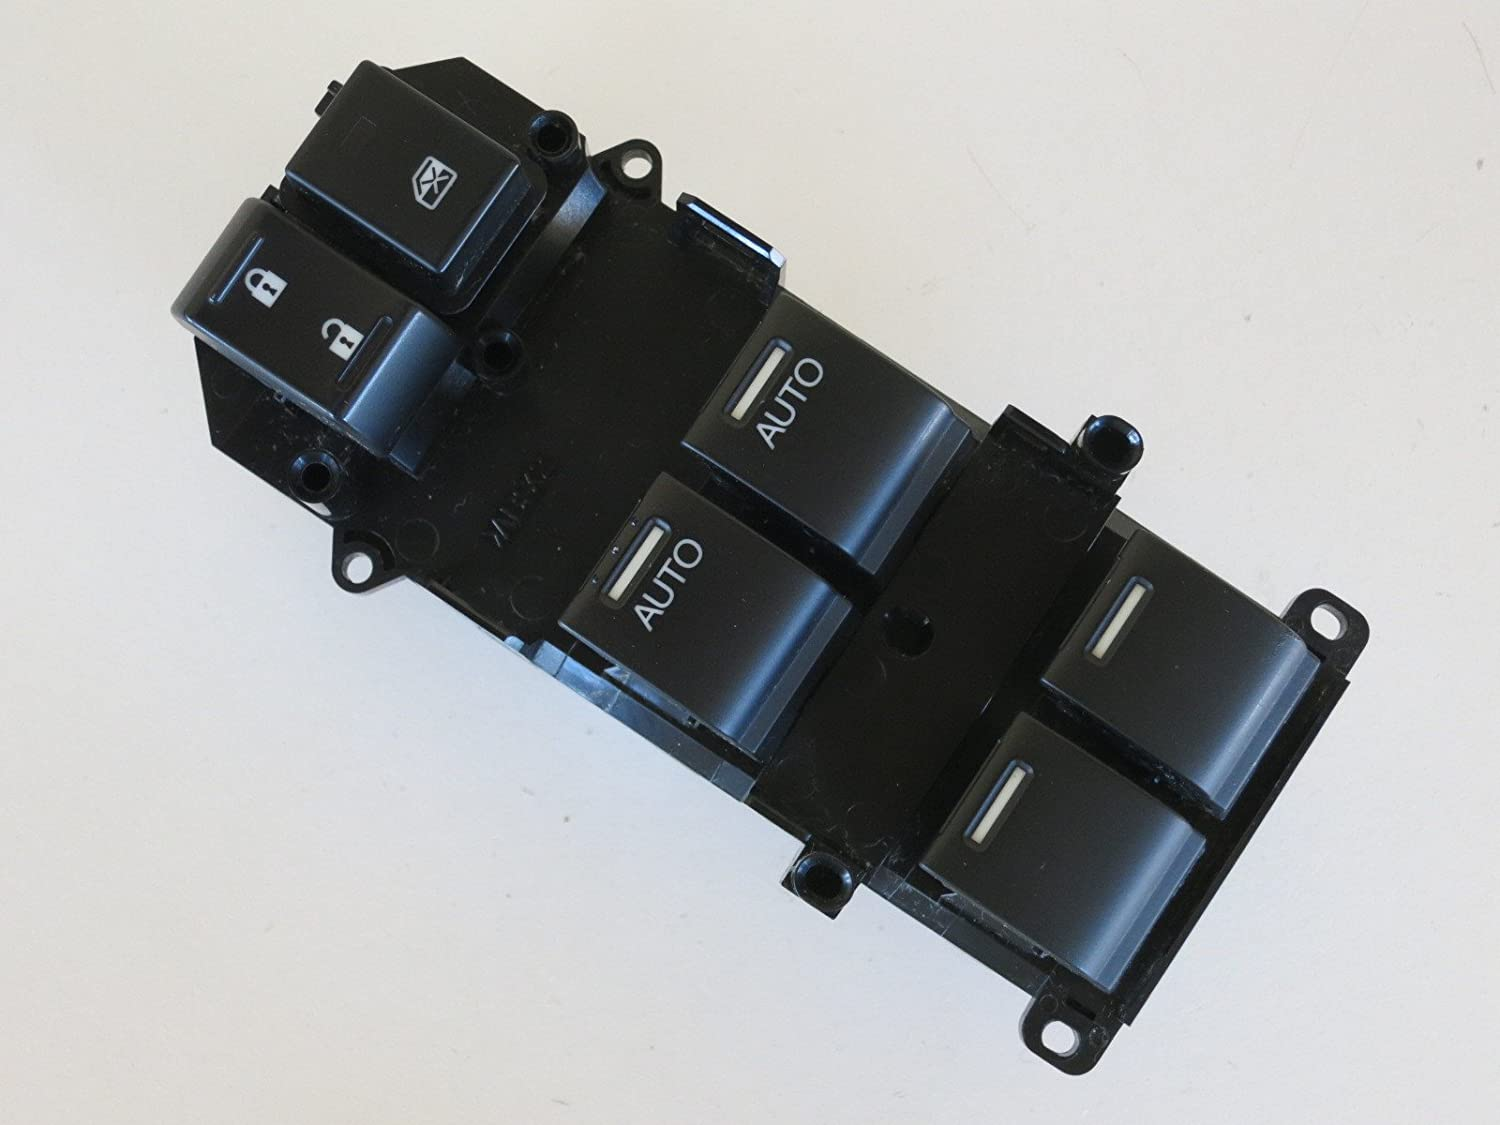 Honda Genuine 78100-SZA-A63 Combination Meter Assembly